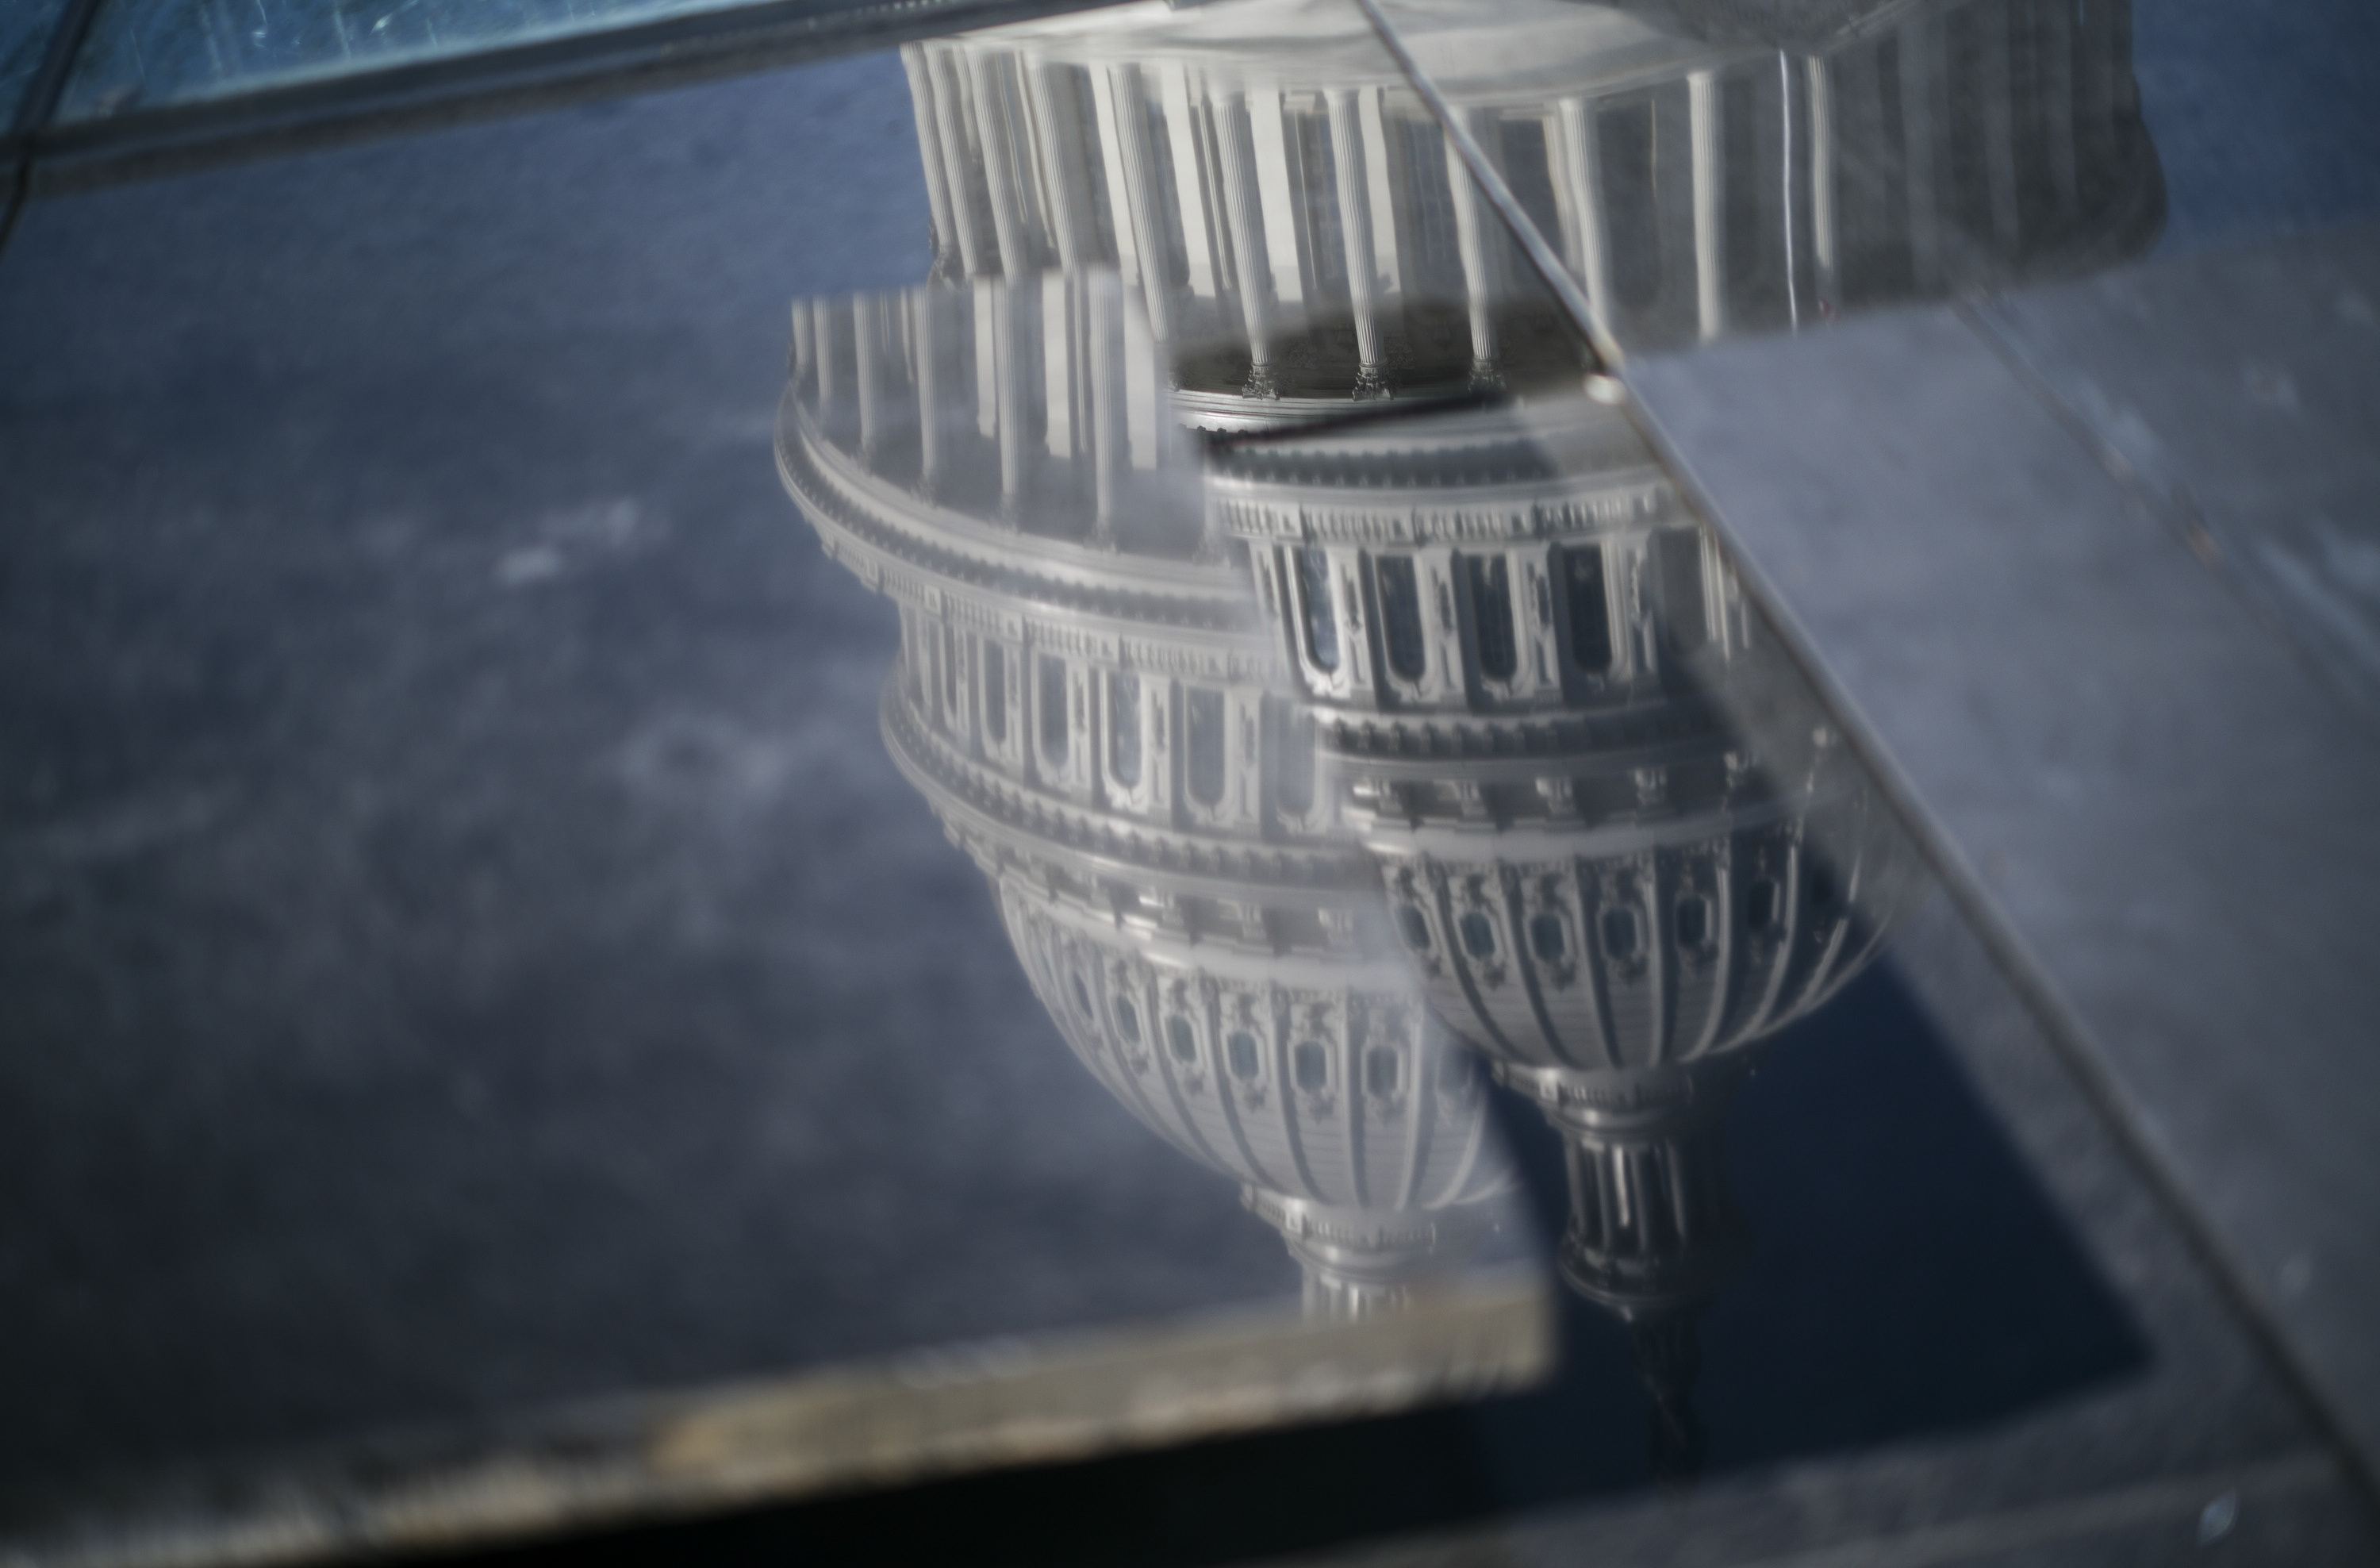 Even C-SPAN Is Piqued: Senate Puts Limits on Trial Coverage